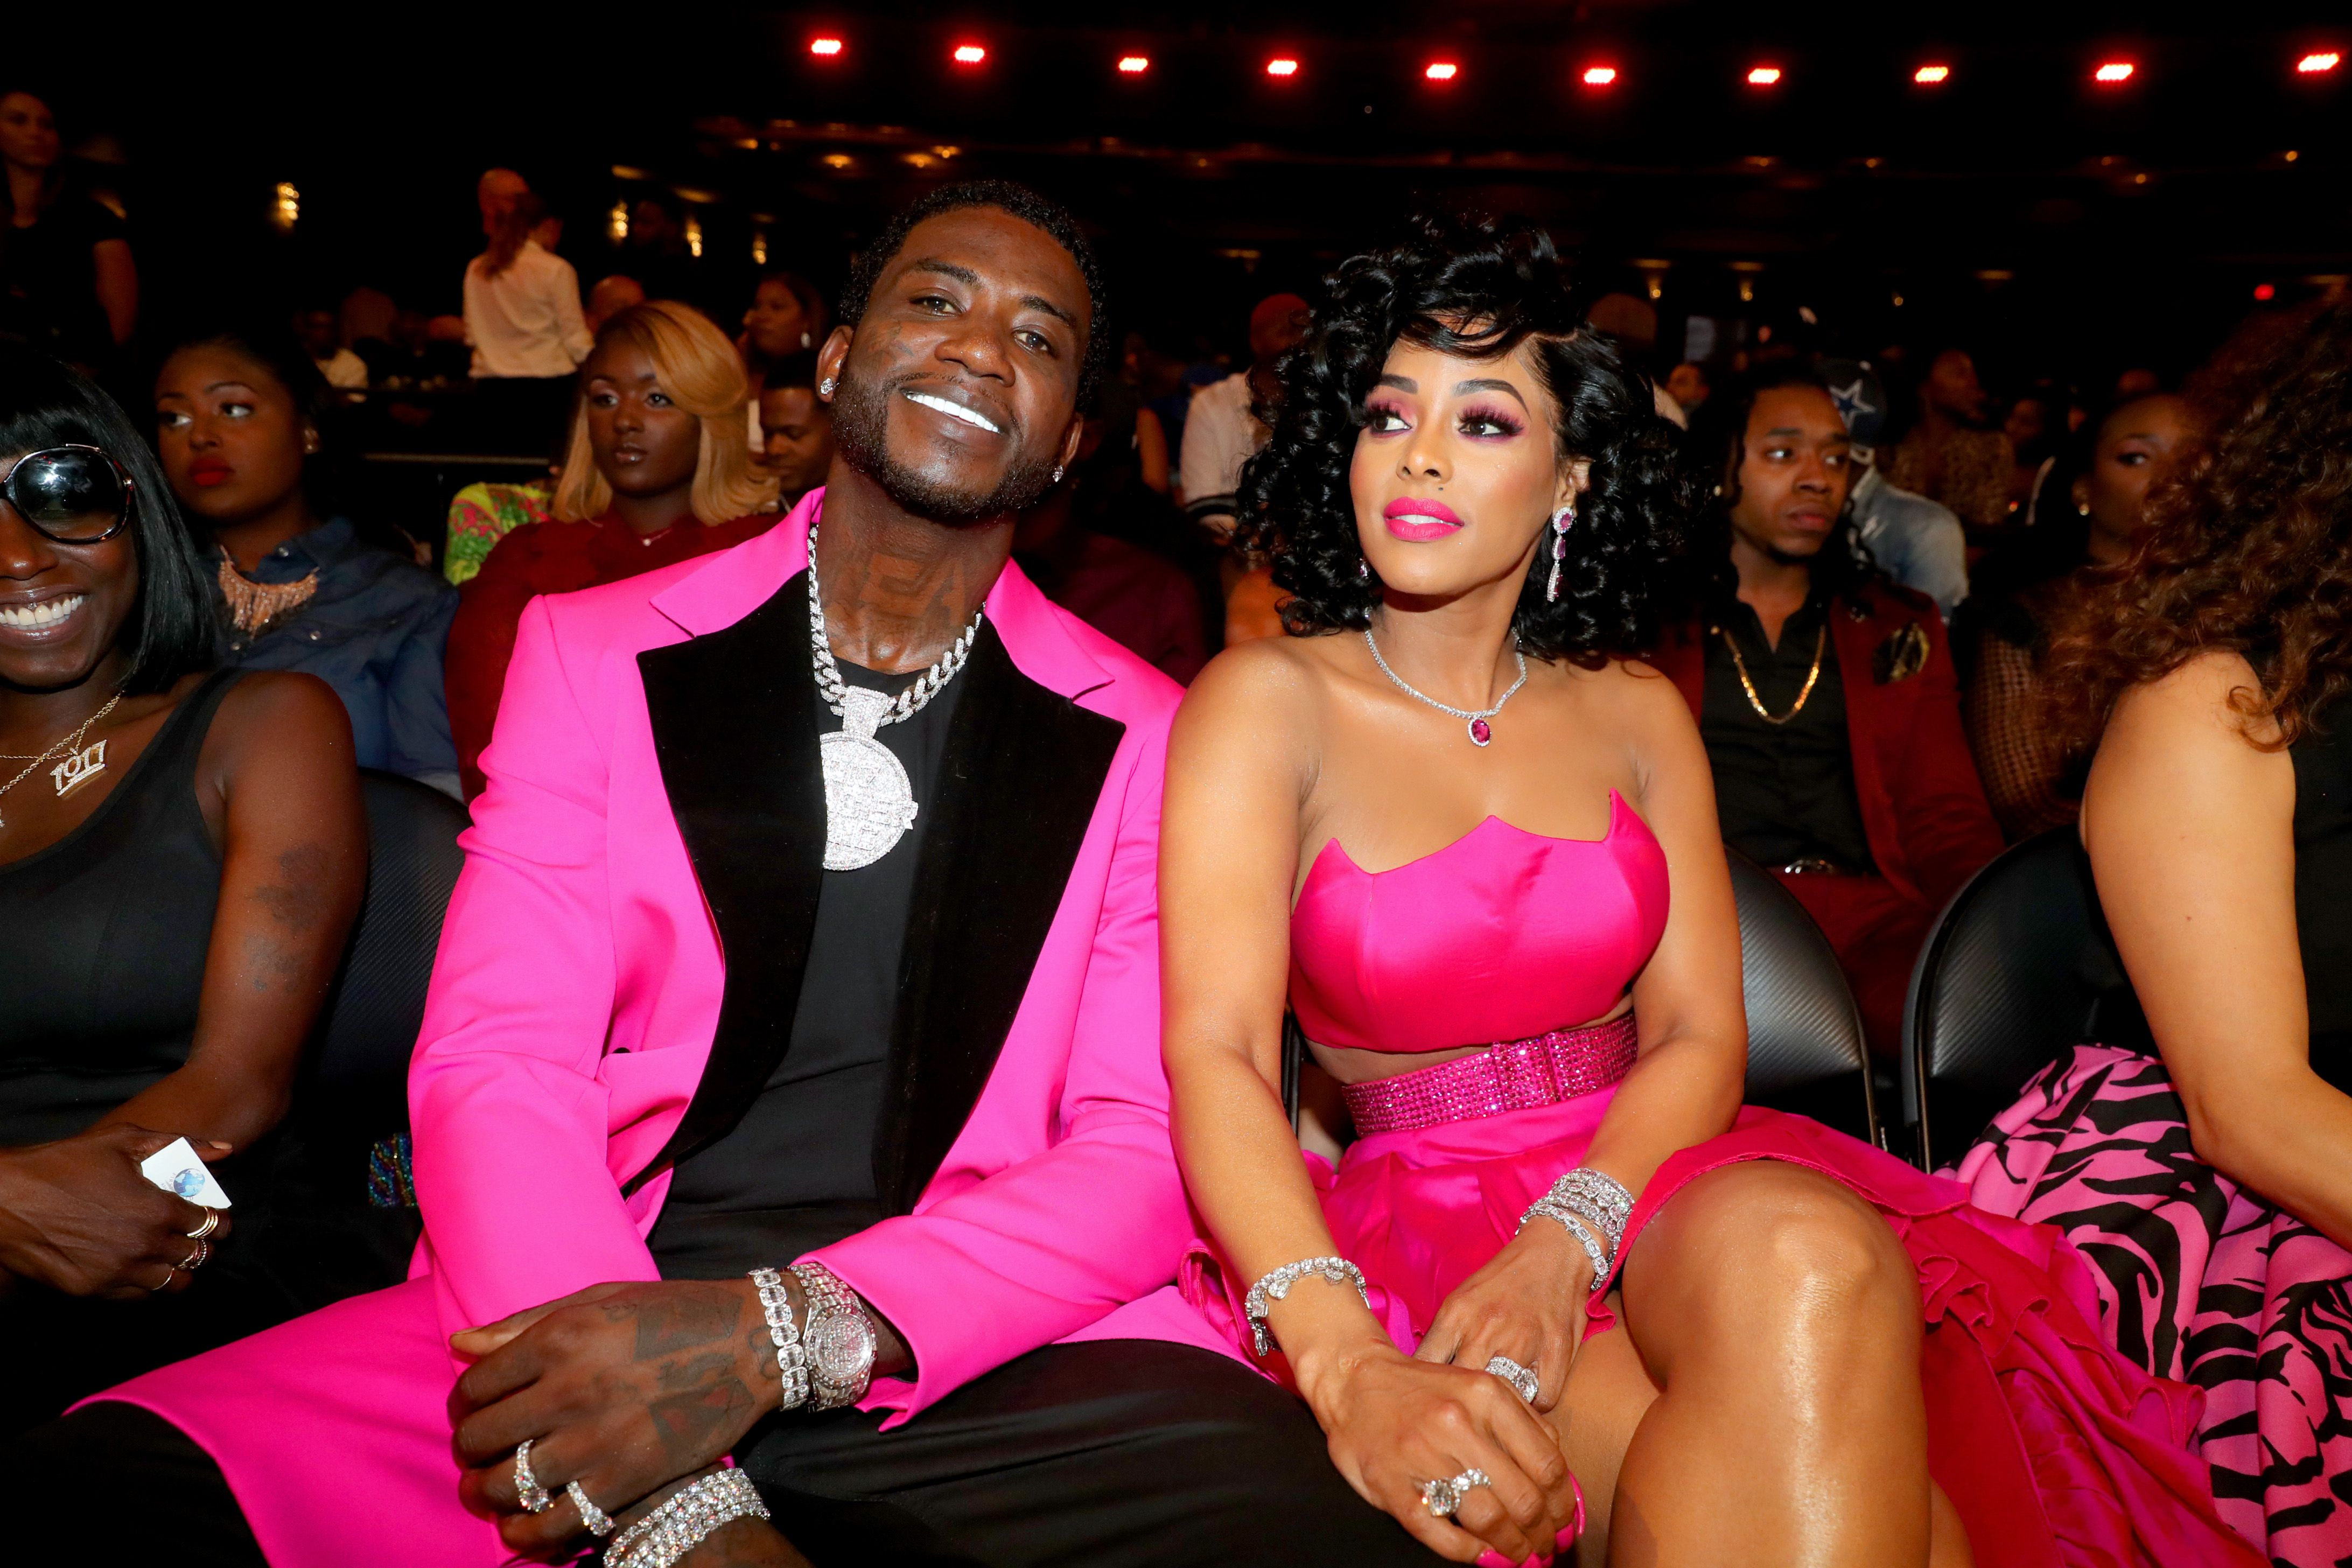 Gucci Mane and Keyshia Ka'oir during the BET Hip Hop Awards 2018 at Fillmore Miami Beach on October 6, 2018 in Miami Beach, Florida. | Photo: Getty Images.